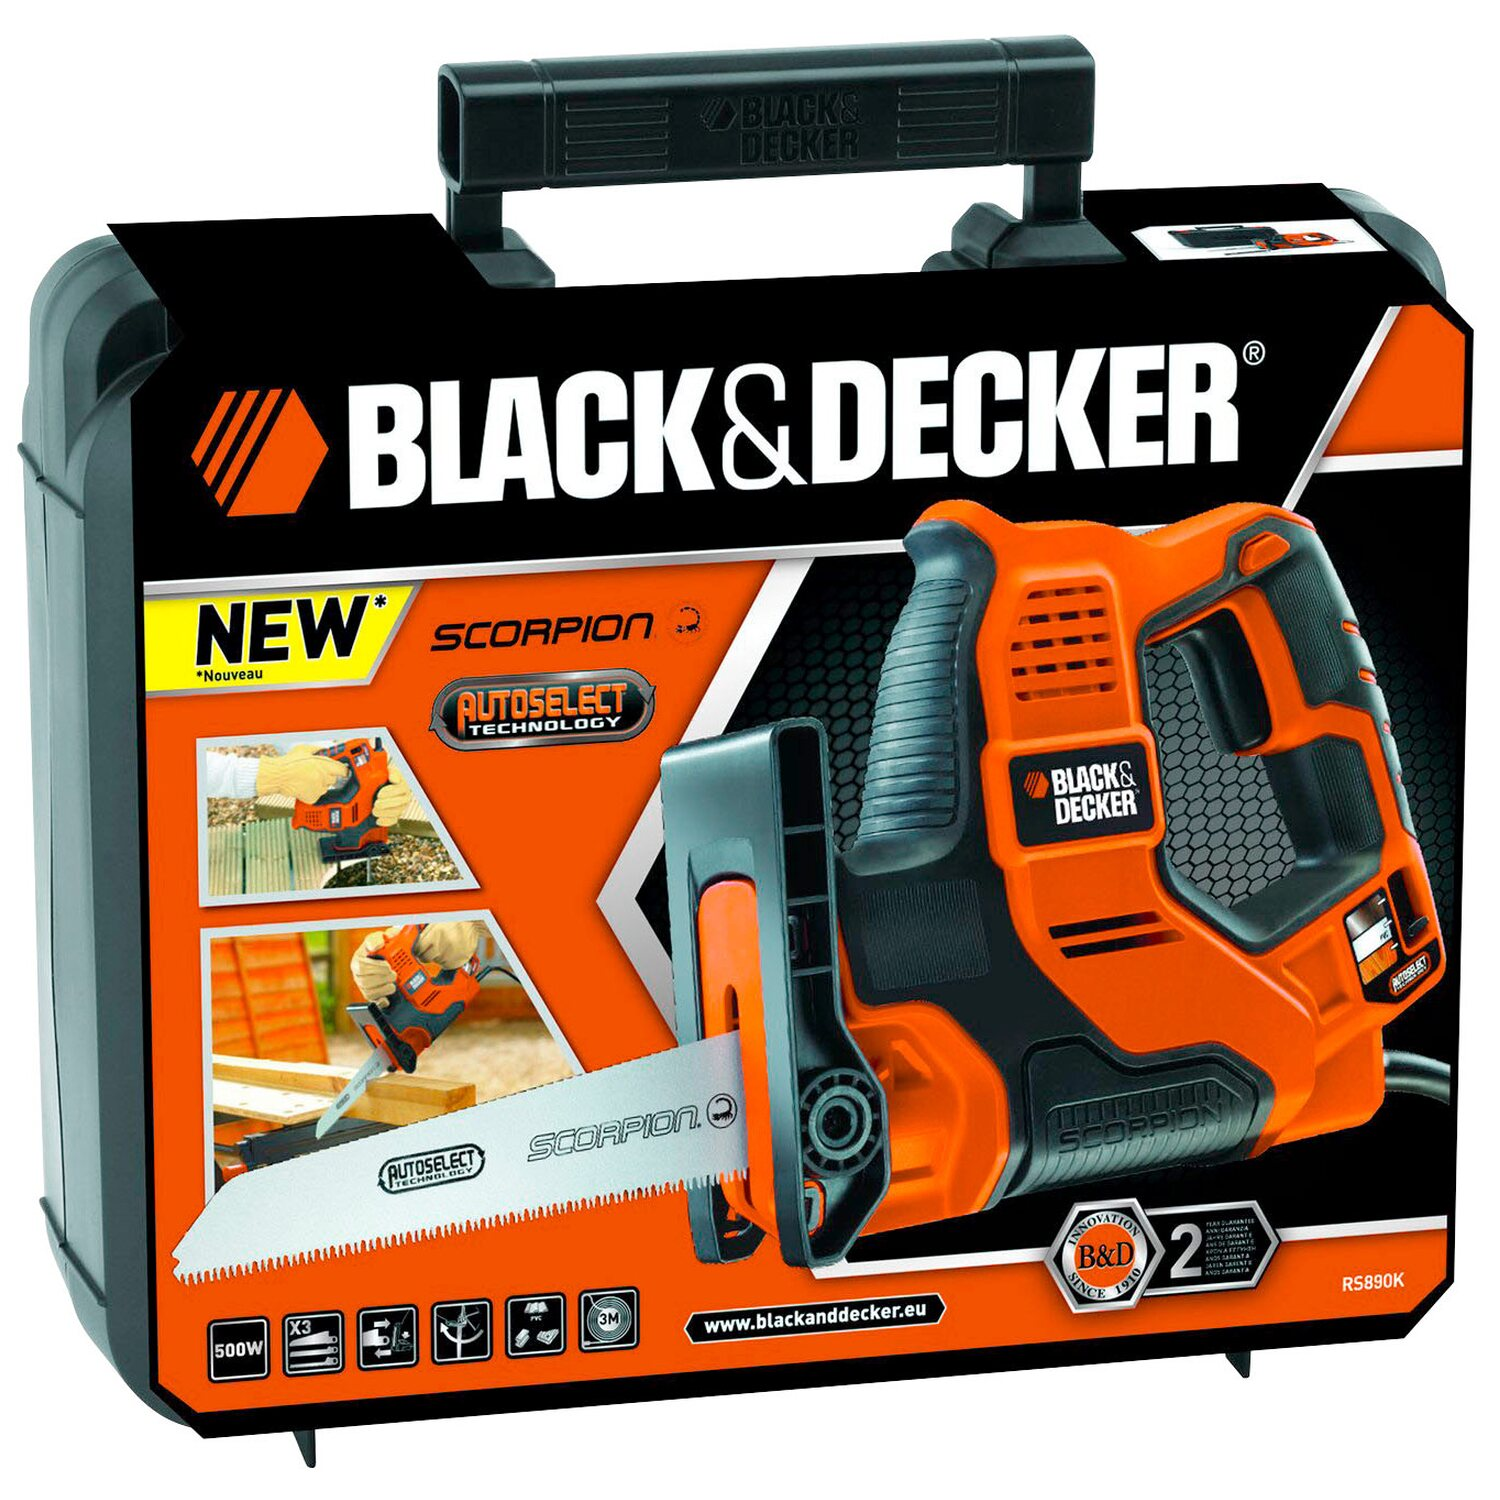 black decker universals ge rs890k kaufen bei obi. Black Bedroom Furniture Sets. Home Design Ideas